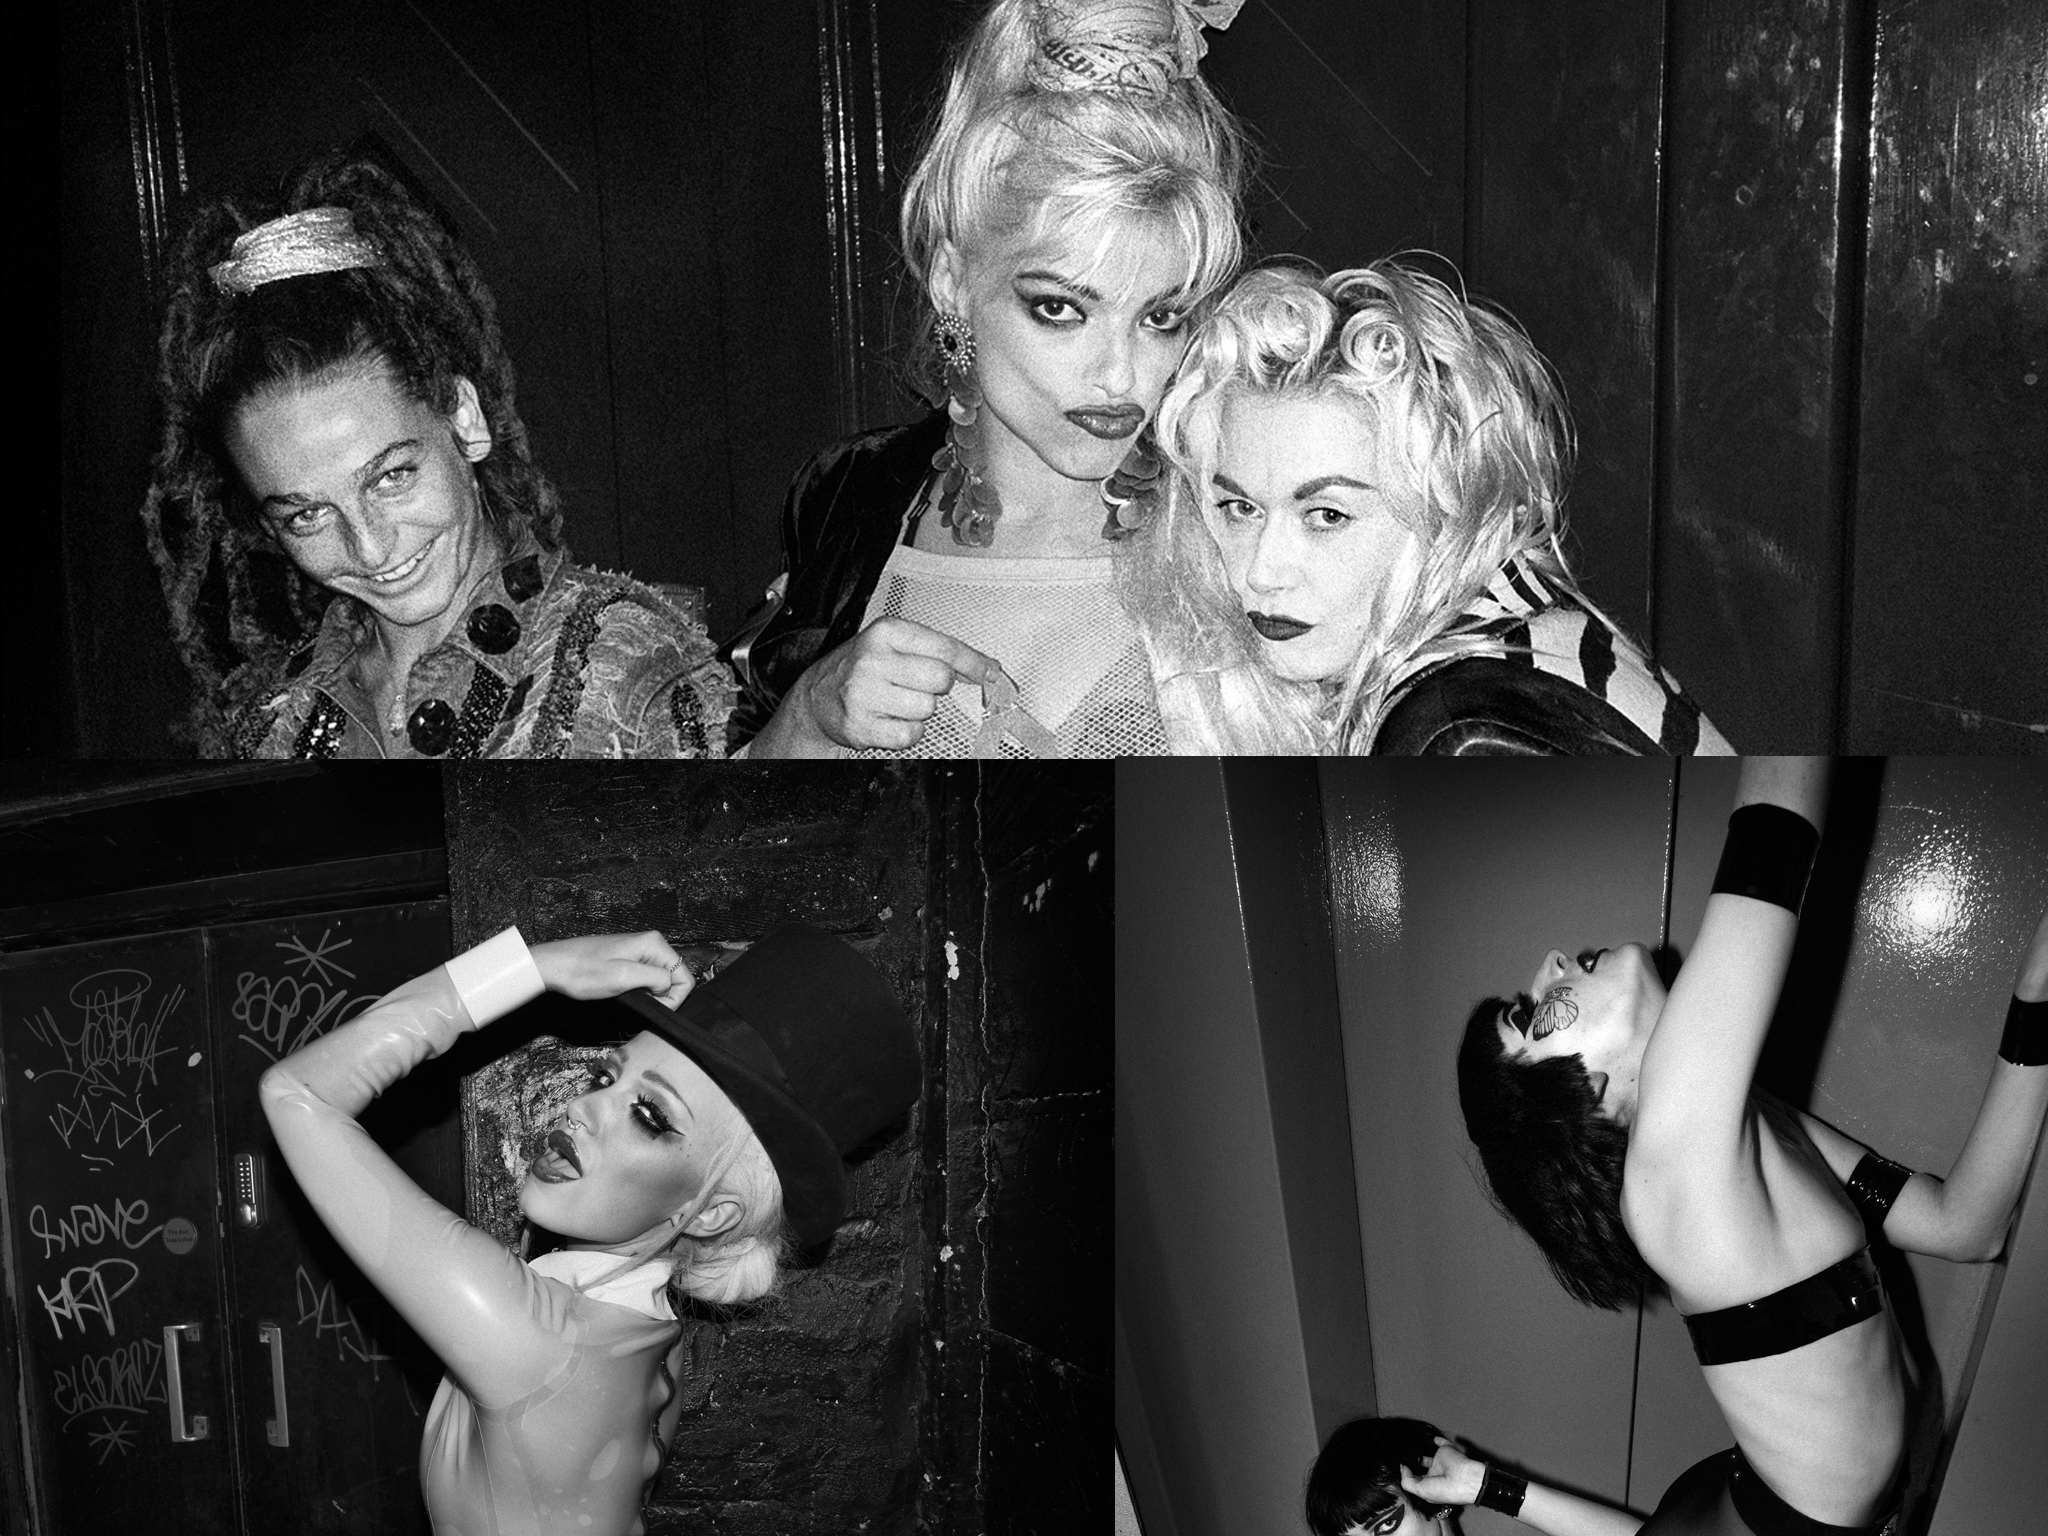 Ten photos of London's nightlife by Derek Ridgers